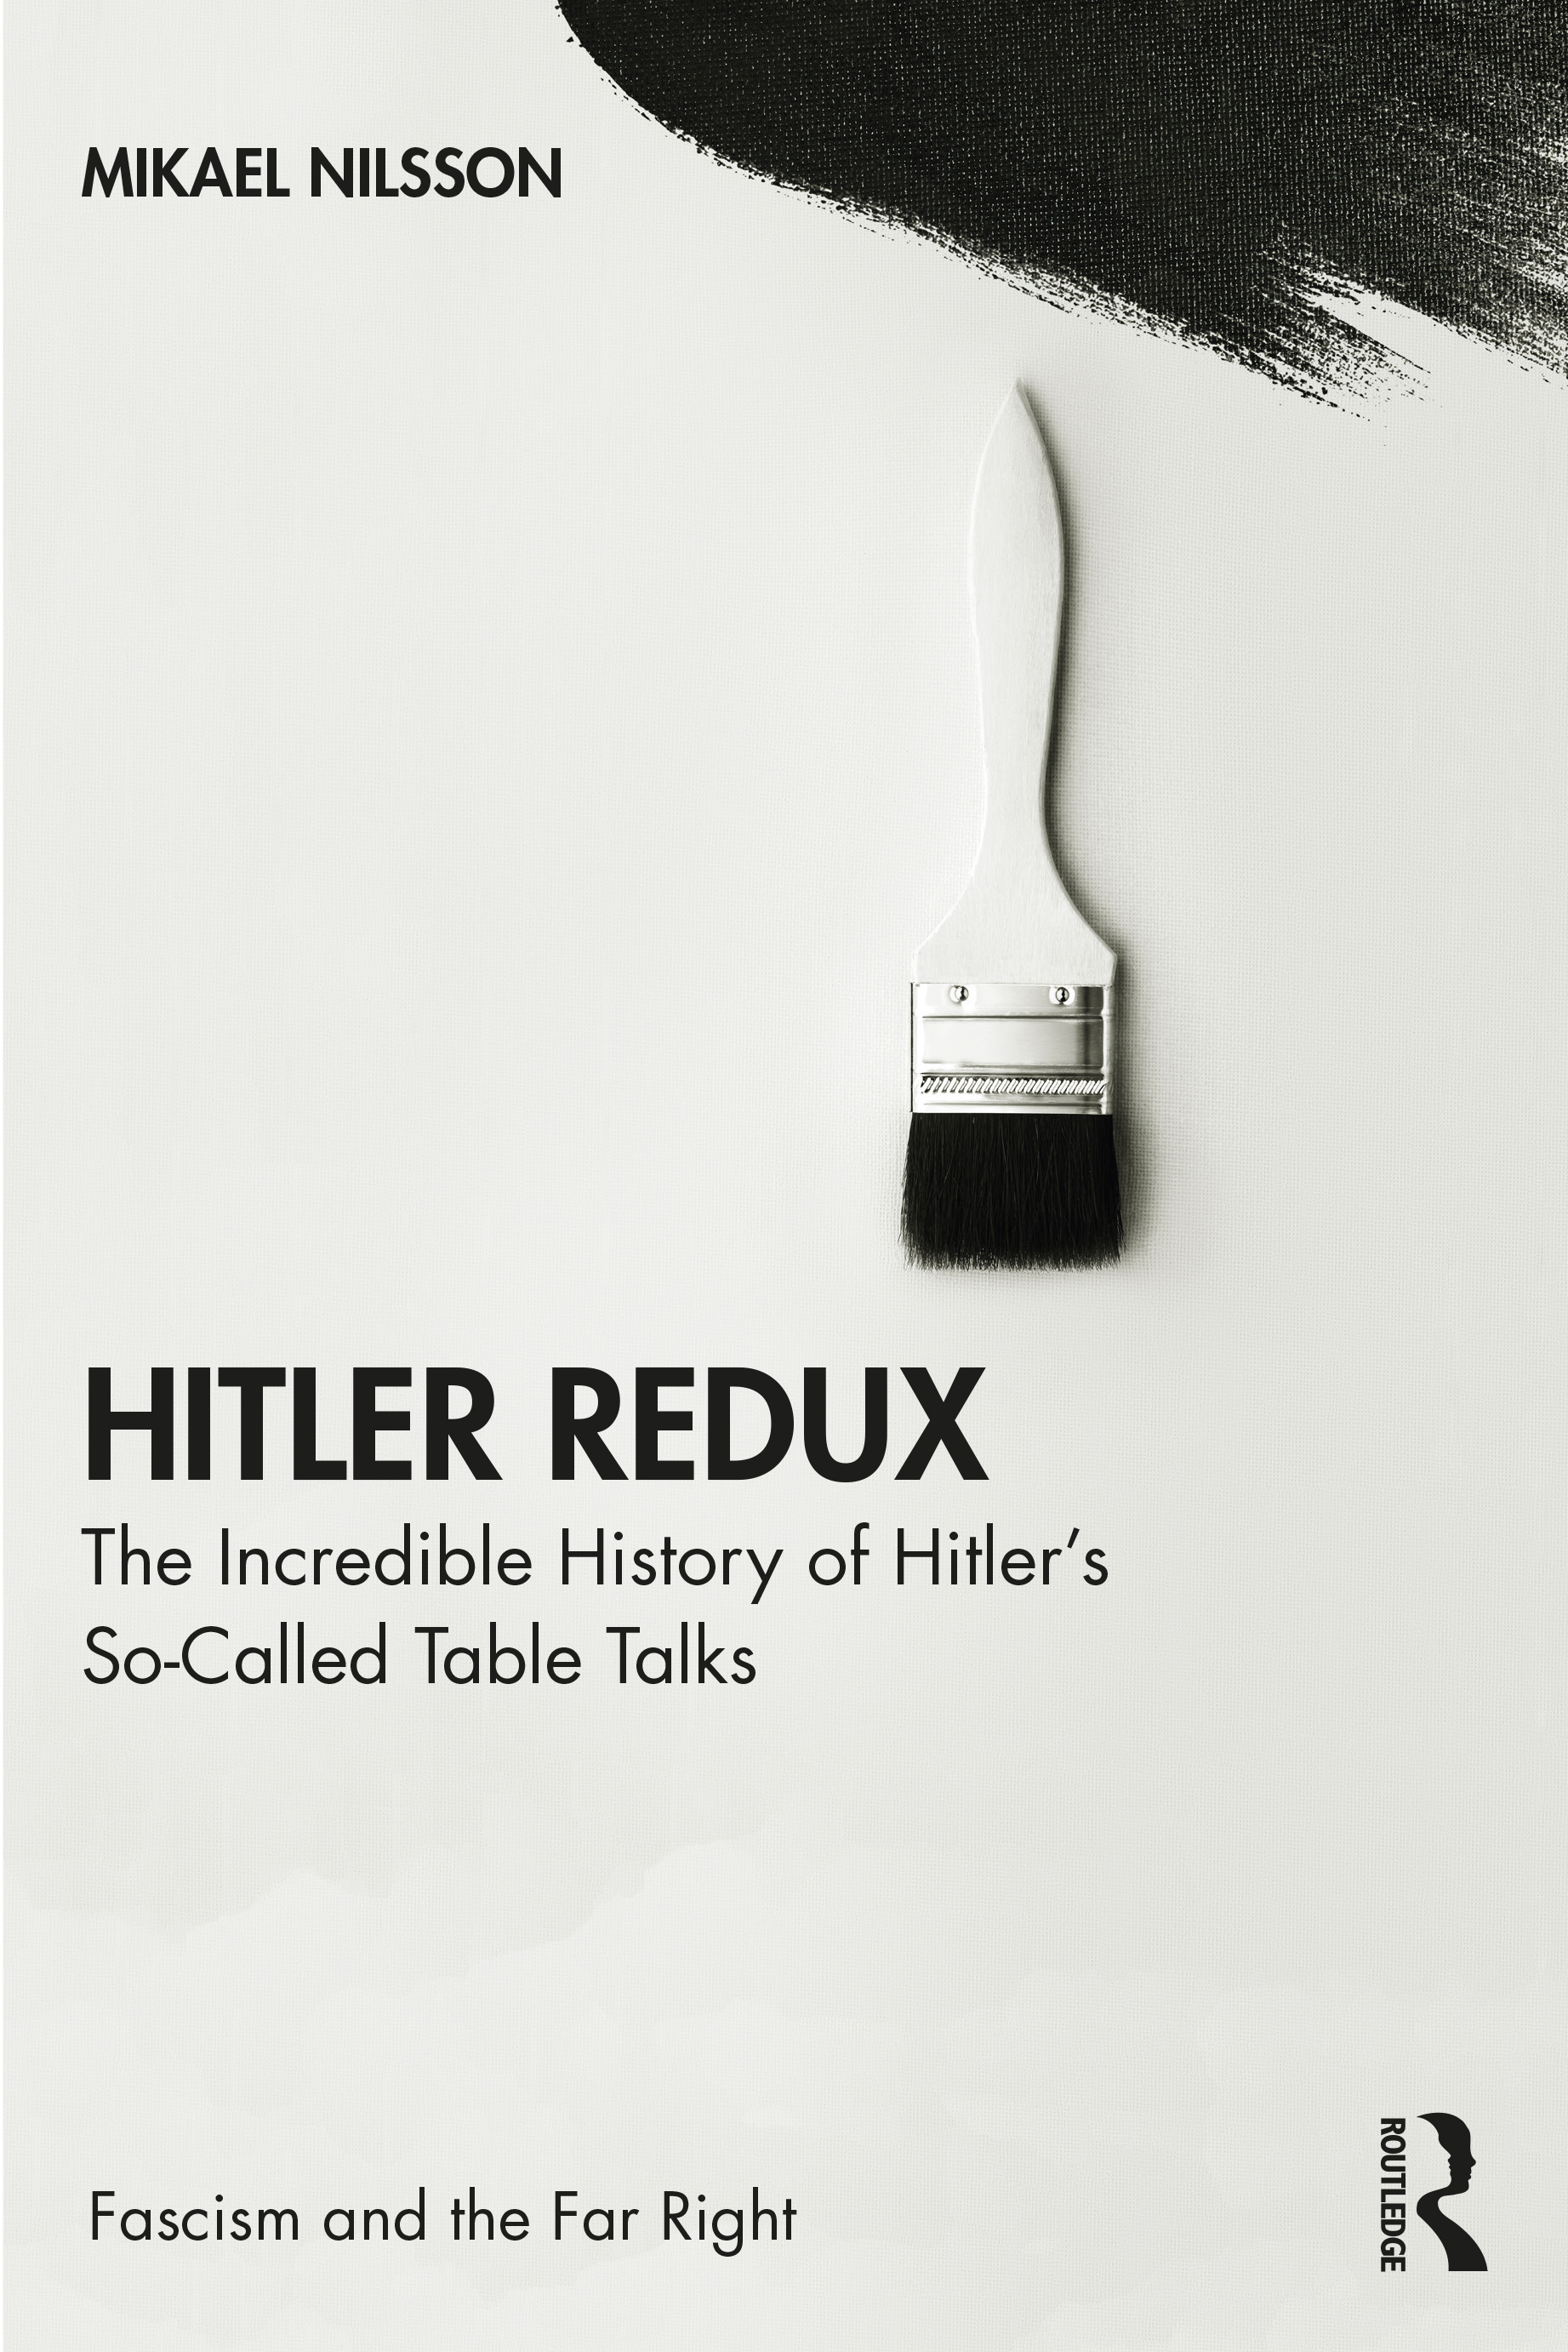 Hitler Redux: The Incredible History of Hitler's So-Called Table Talks book cover